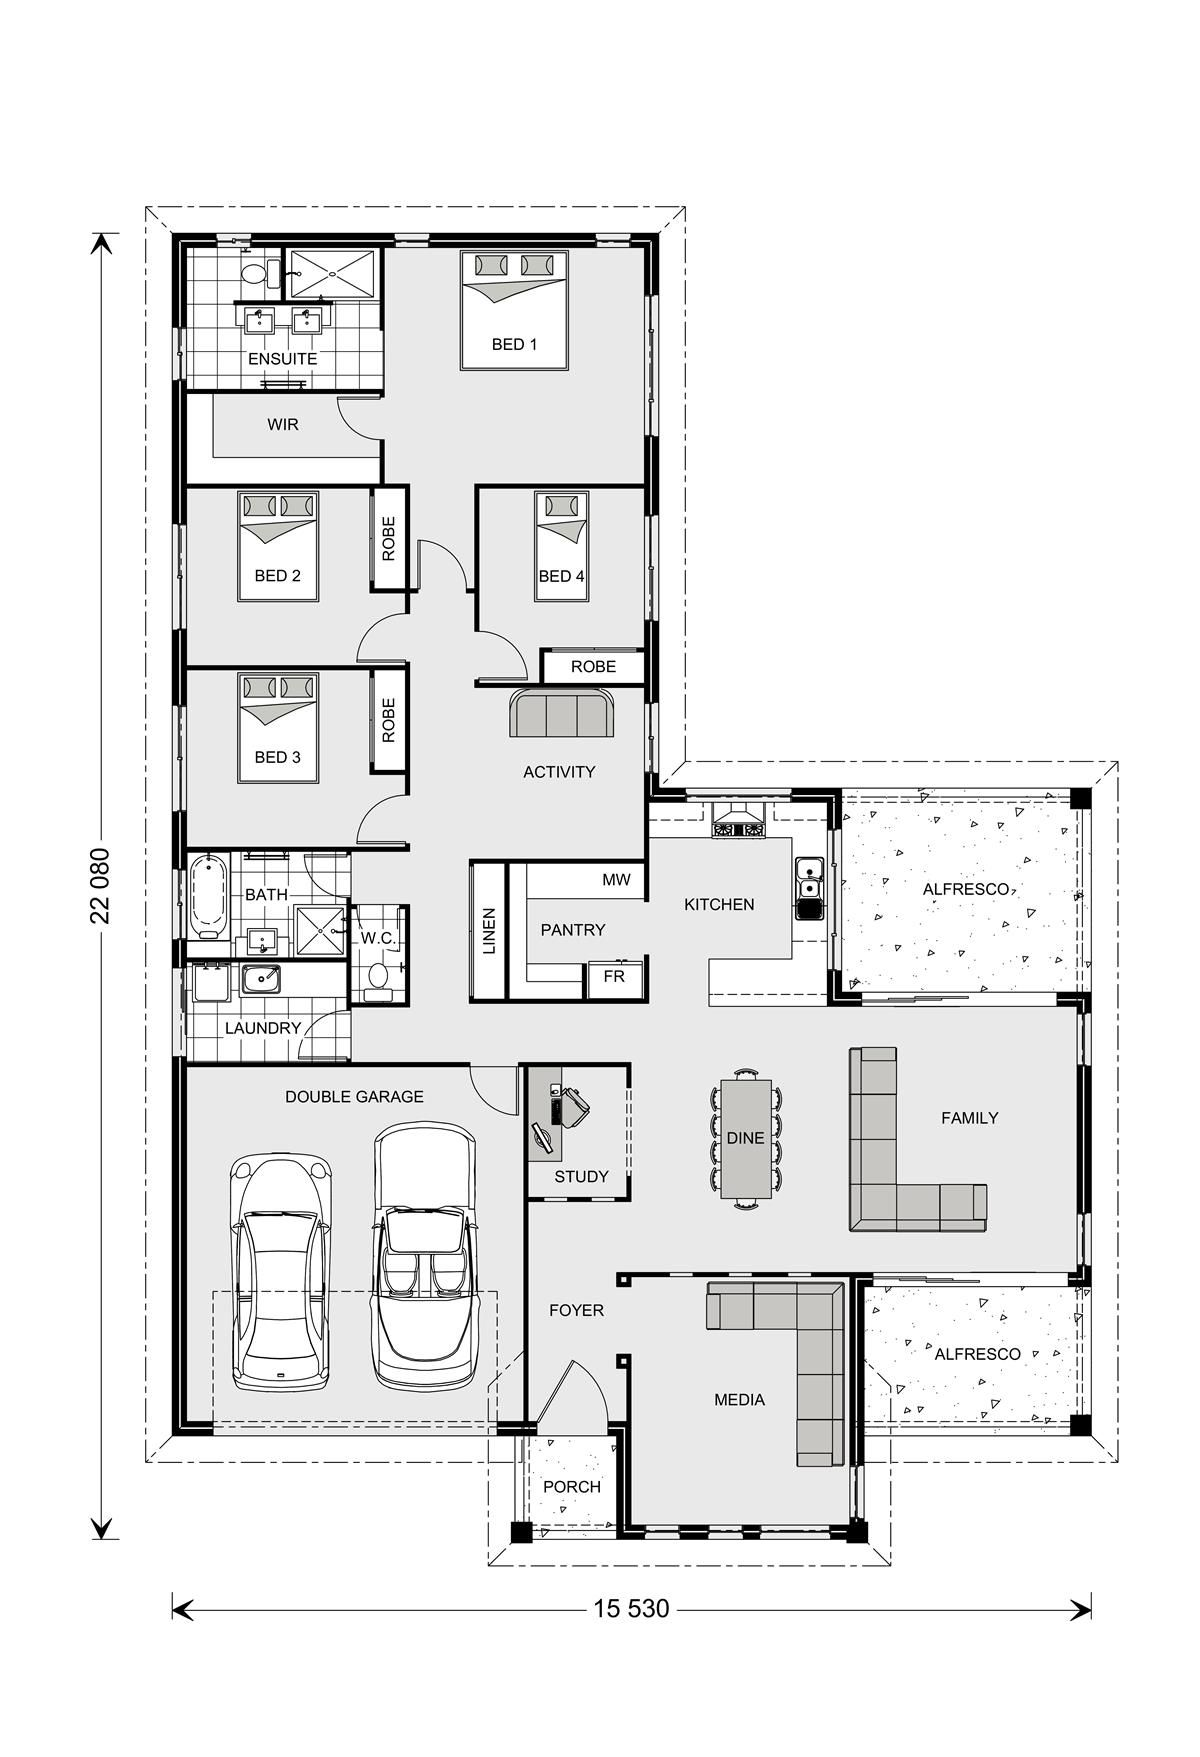 Gj gardner floor plans floor matttroy for Gardner floor plans